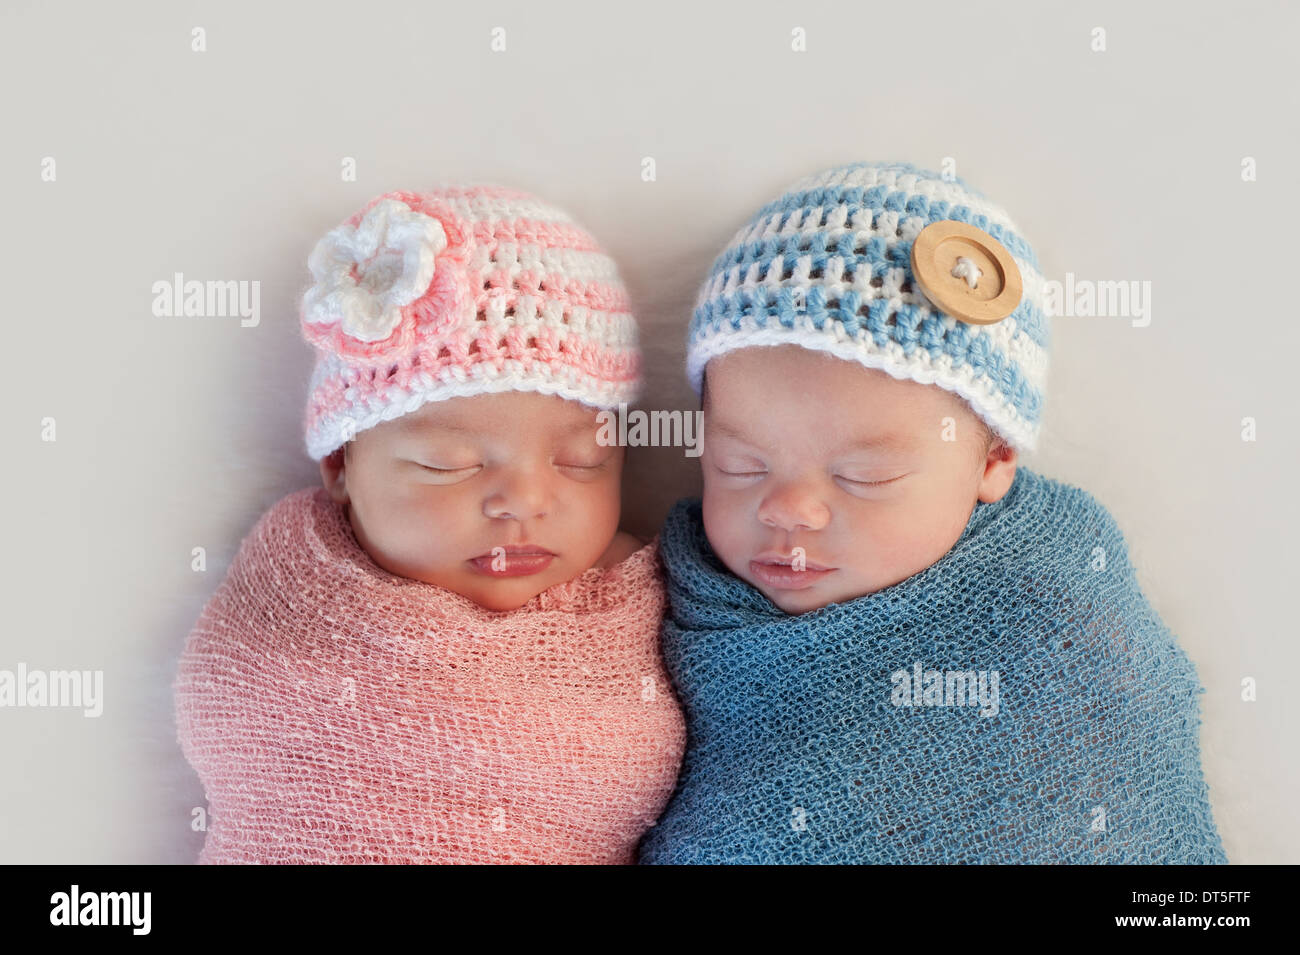 Boy and girl fraternal twin newborn babies - Stock Image